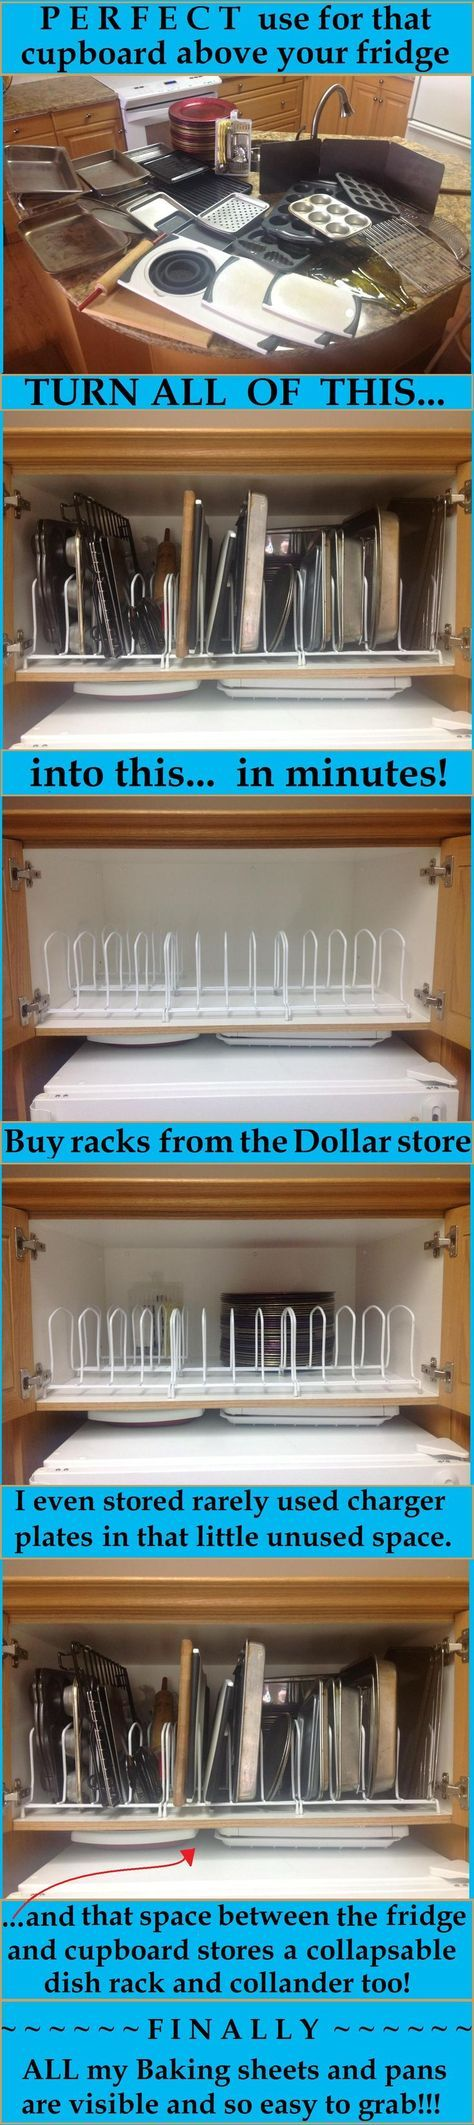 Dollar store dish racks to separate the pans an